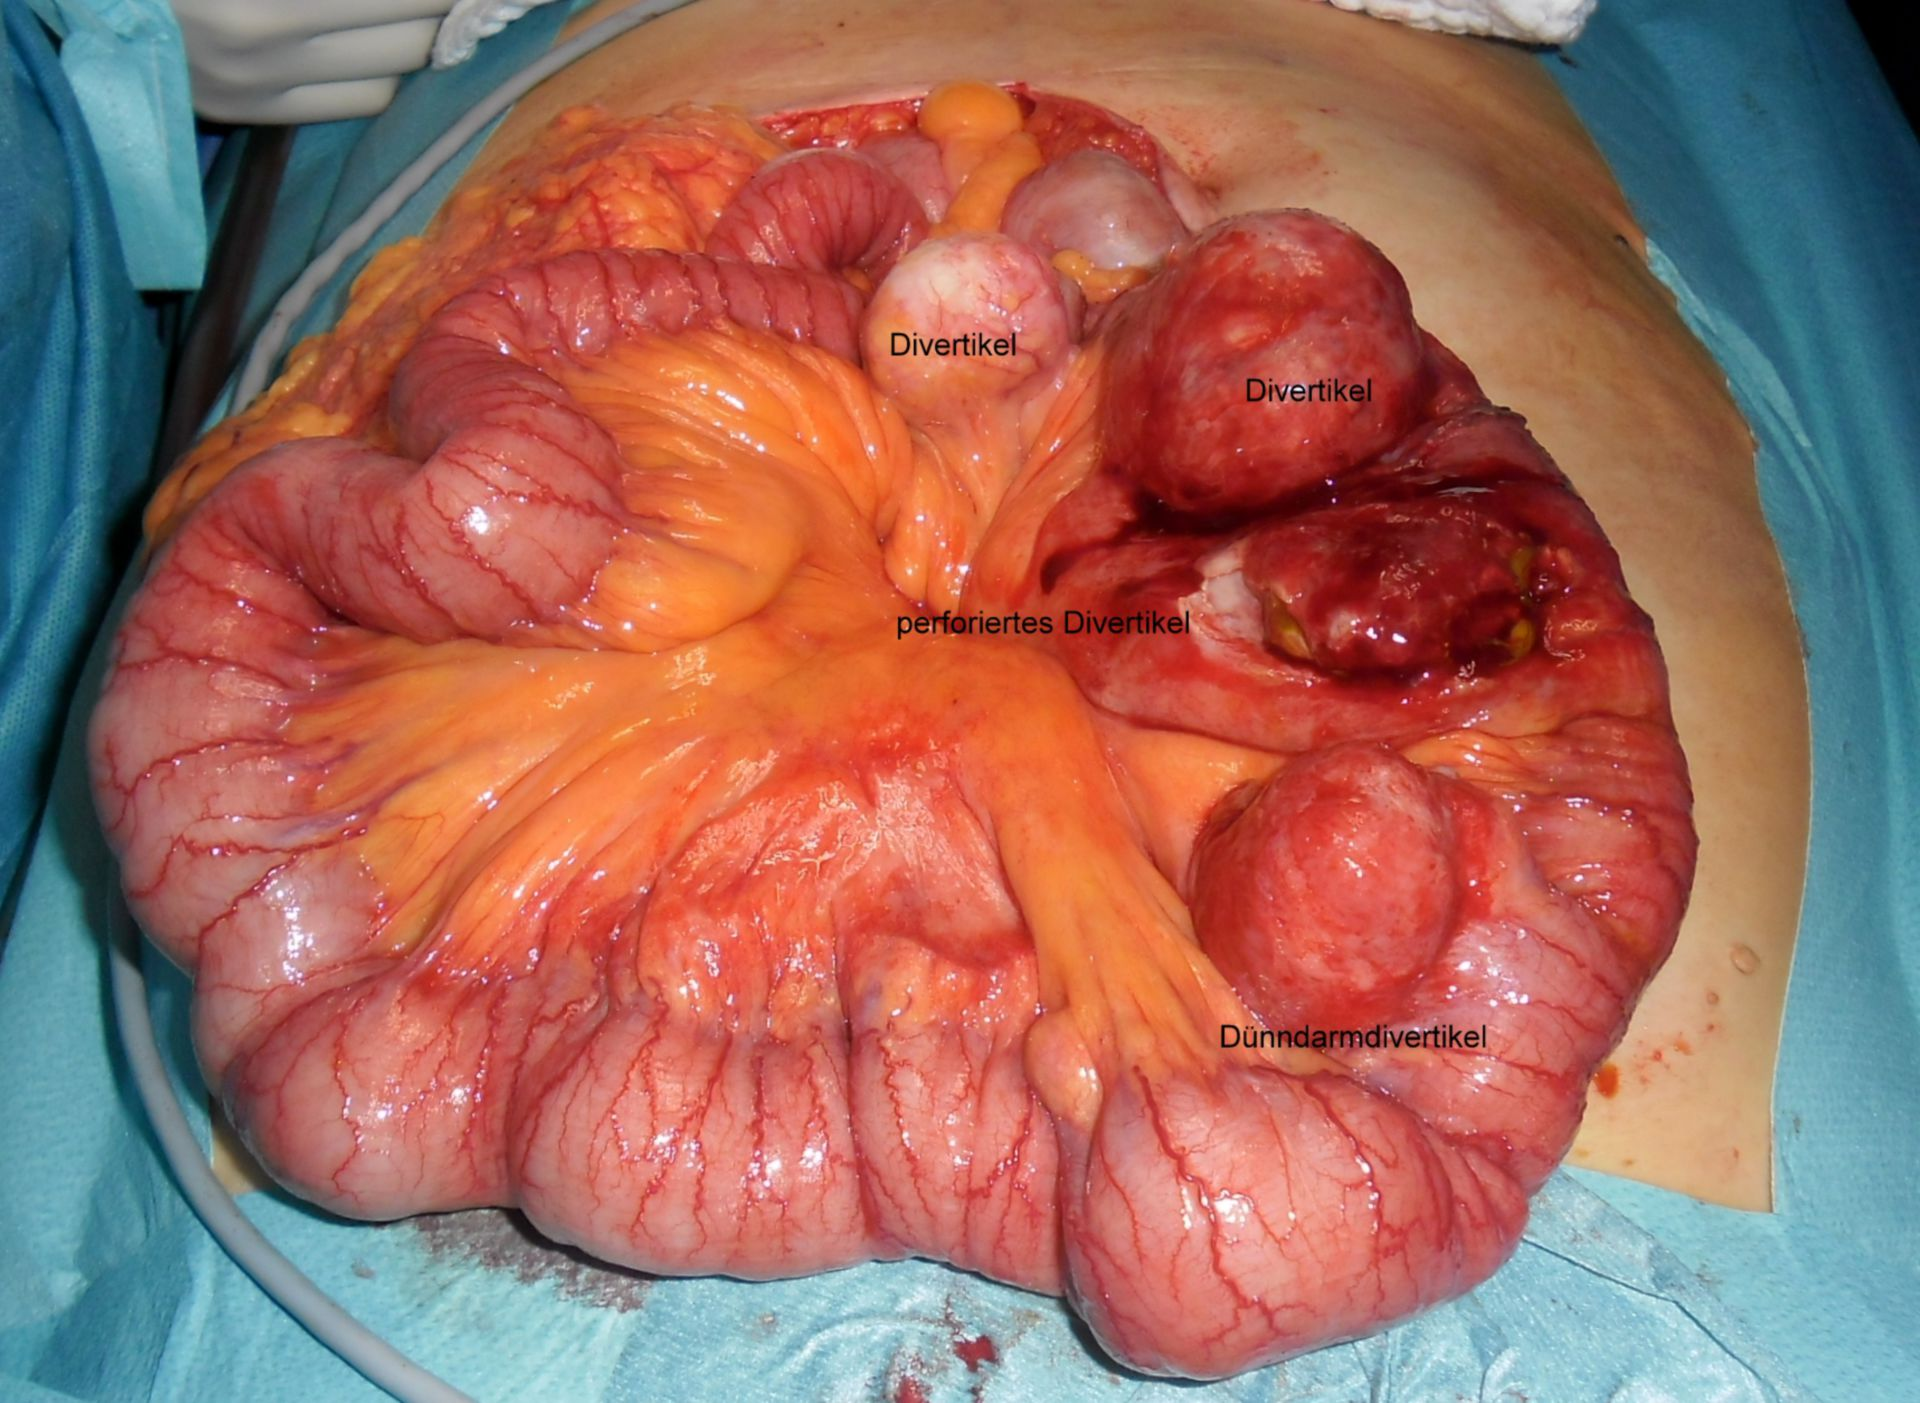 Diverticulitis del intestino delgado - perforación